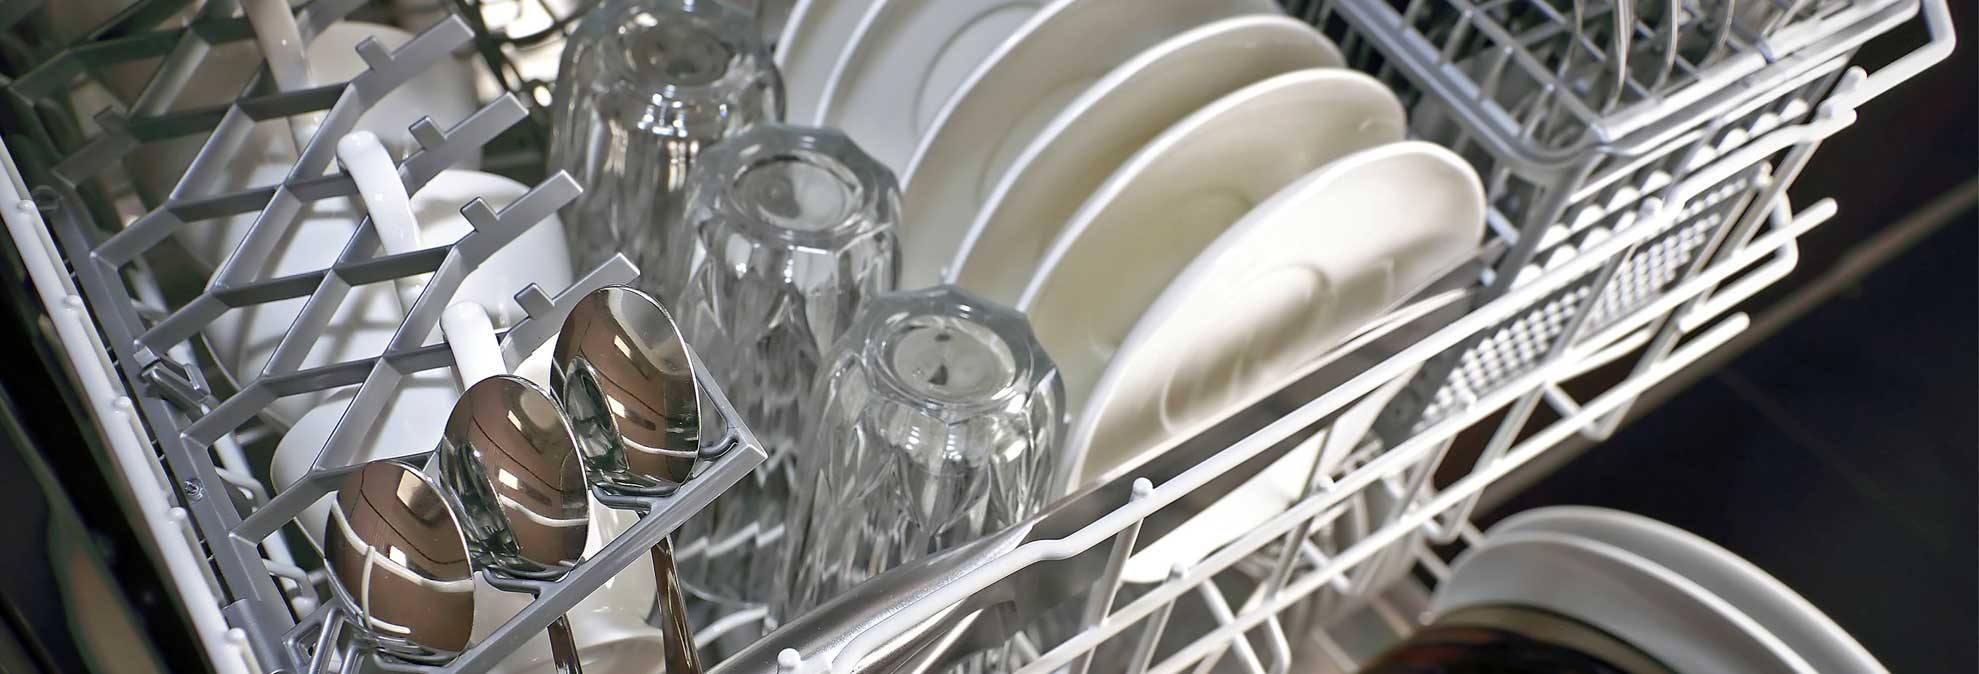 How To Buy Dishwasher Best Dishwashers Of 2016 Consumer Reports